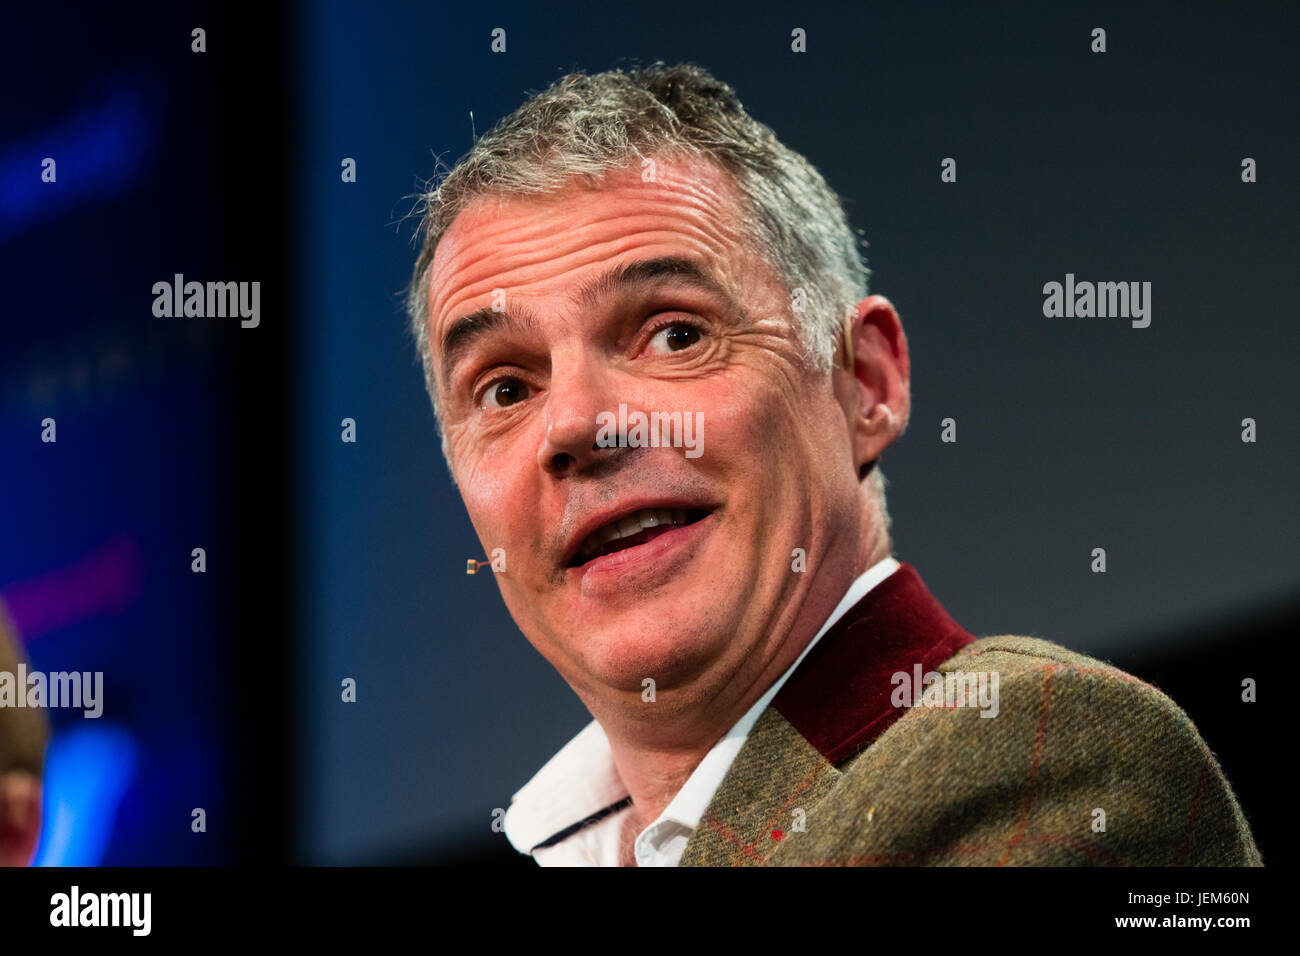 Peter Jukes, English author, screenwriter, playwright, literary critic and blogger.,   at the 2017 Hay Festival - Stock Image